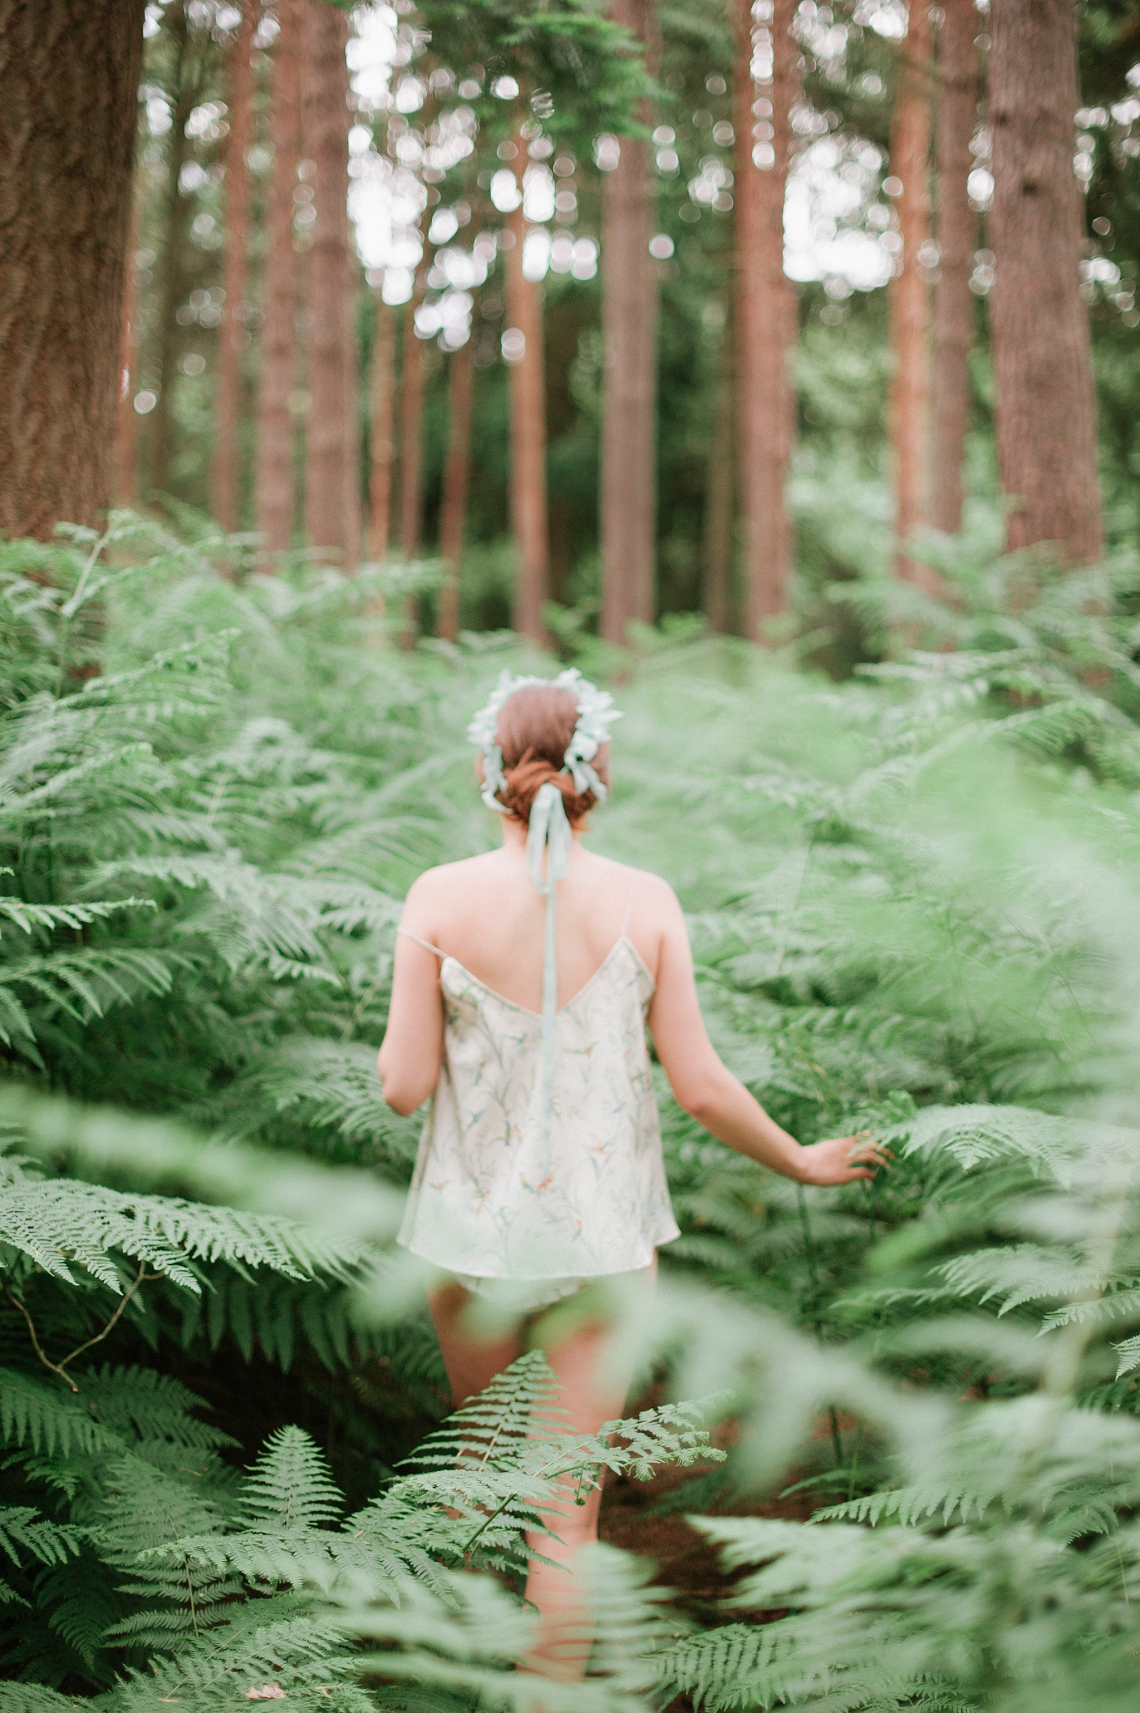 A Beautiful Botanical Boudoir Shoot Inspired By Mother Nature